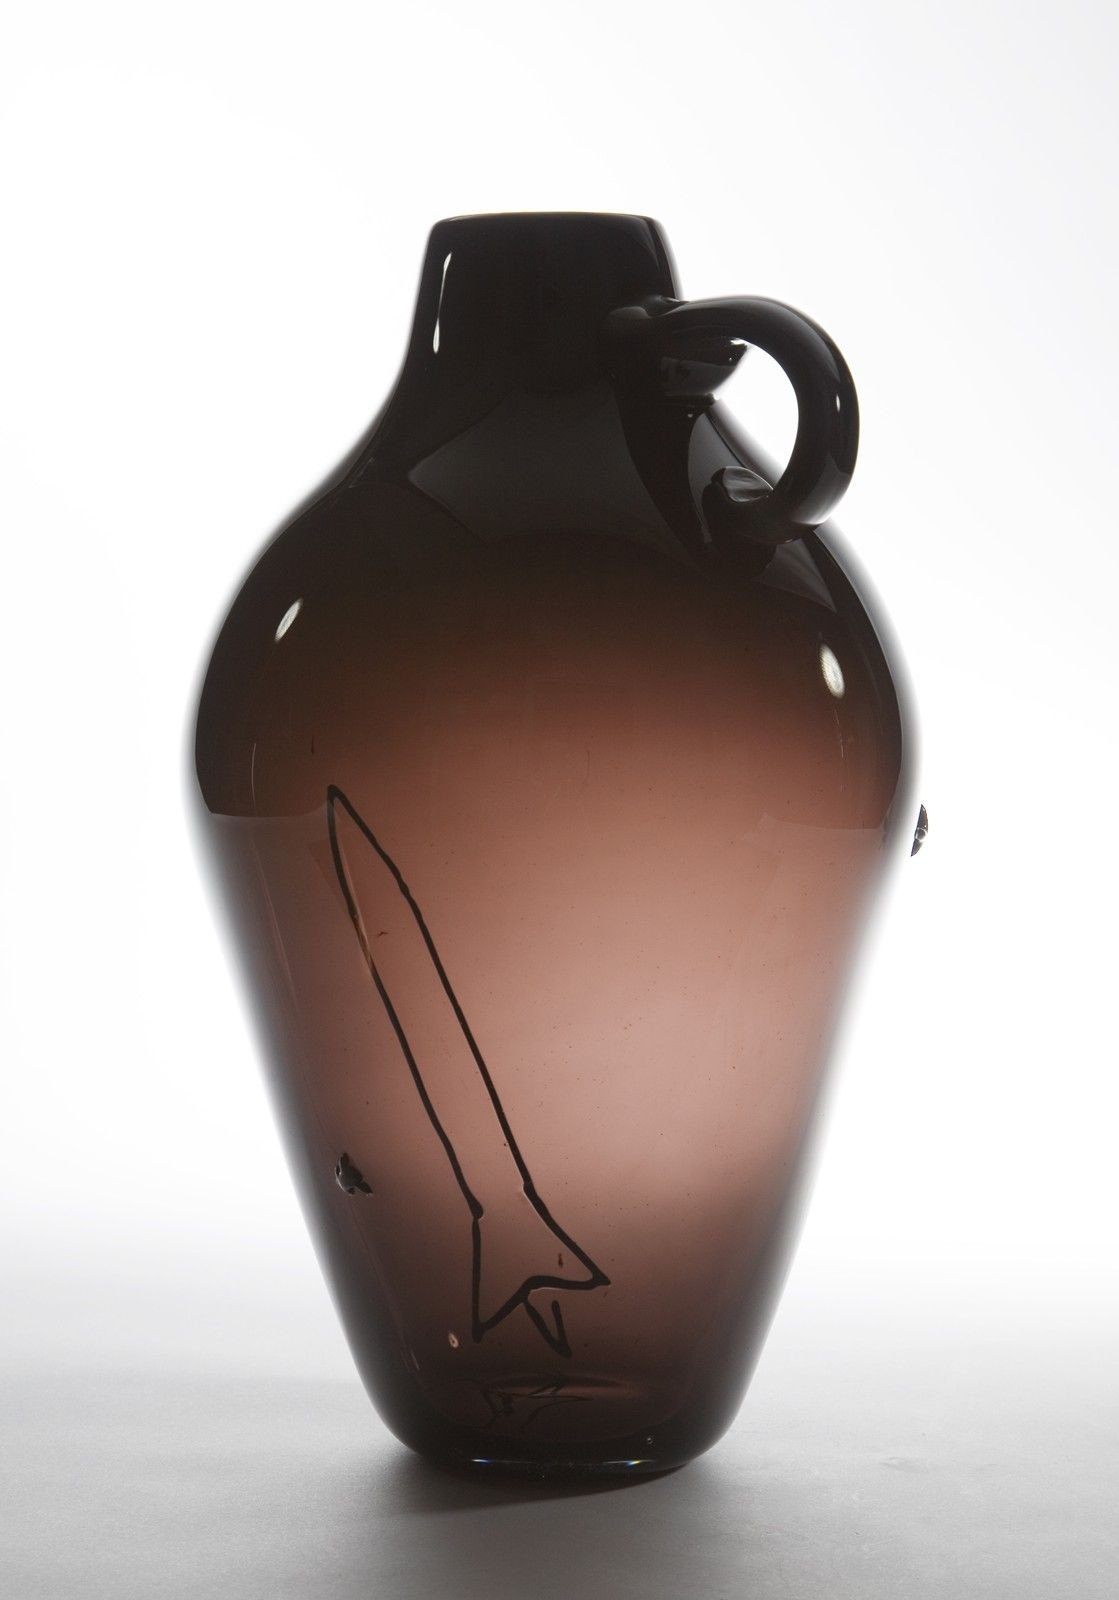 jozefina art glass vase of black rocket jug prototype by jason miller 2008 corning museum regarding artist a·